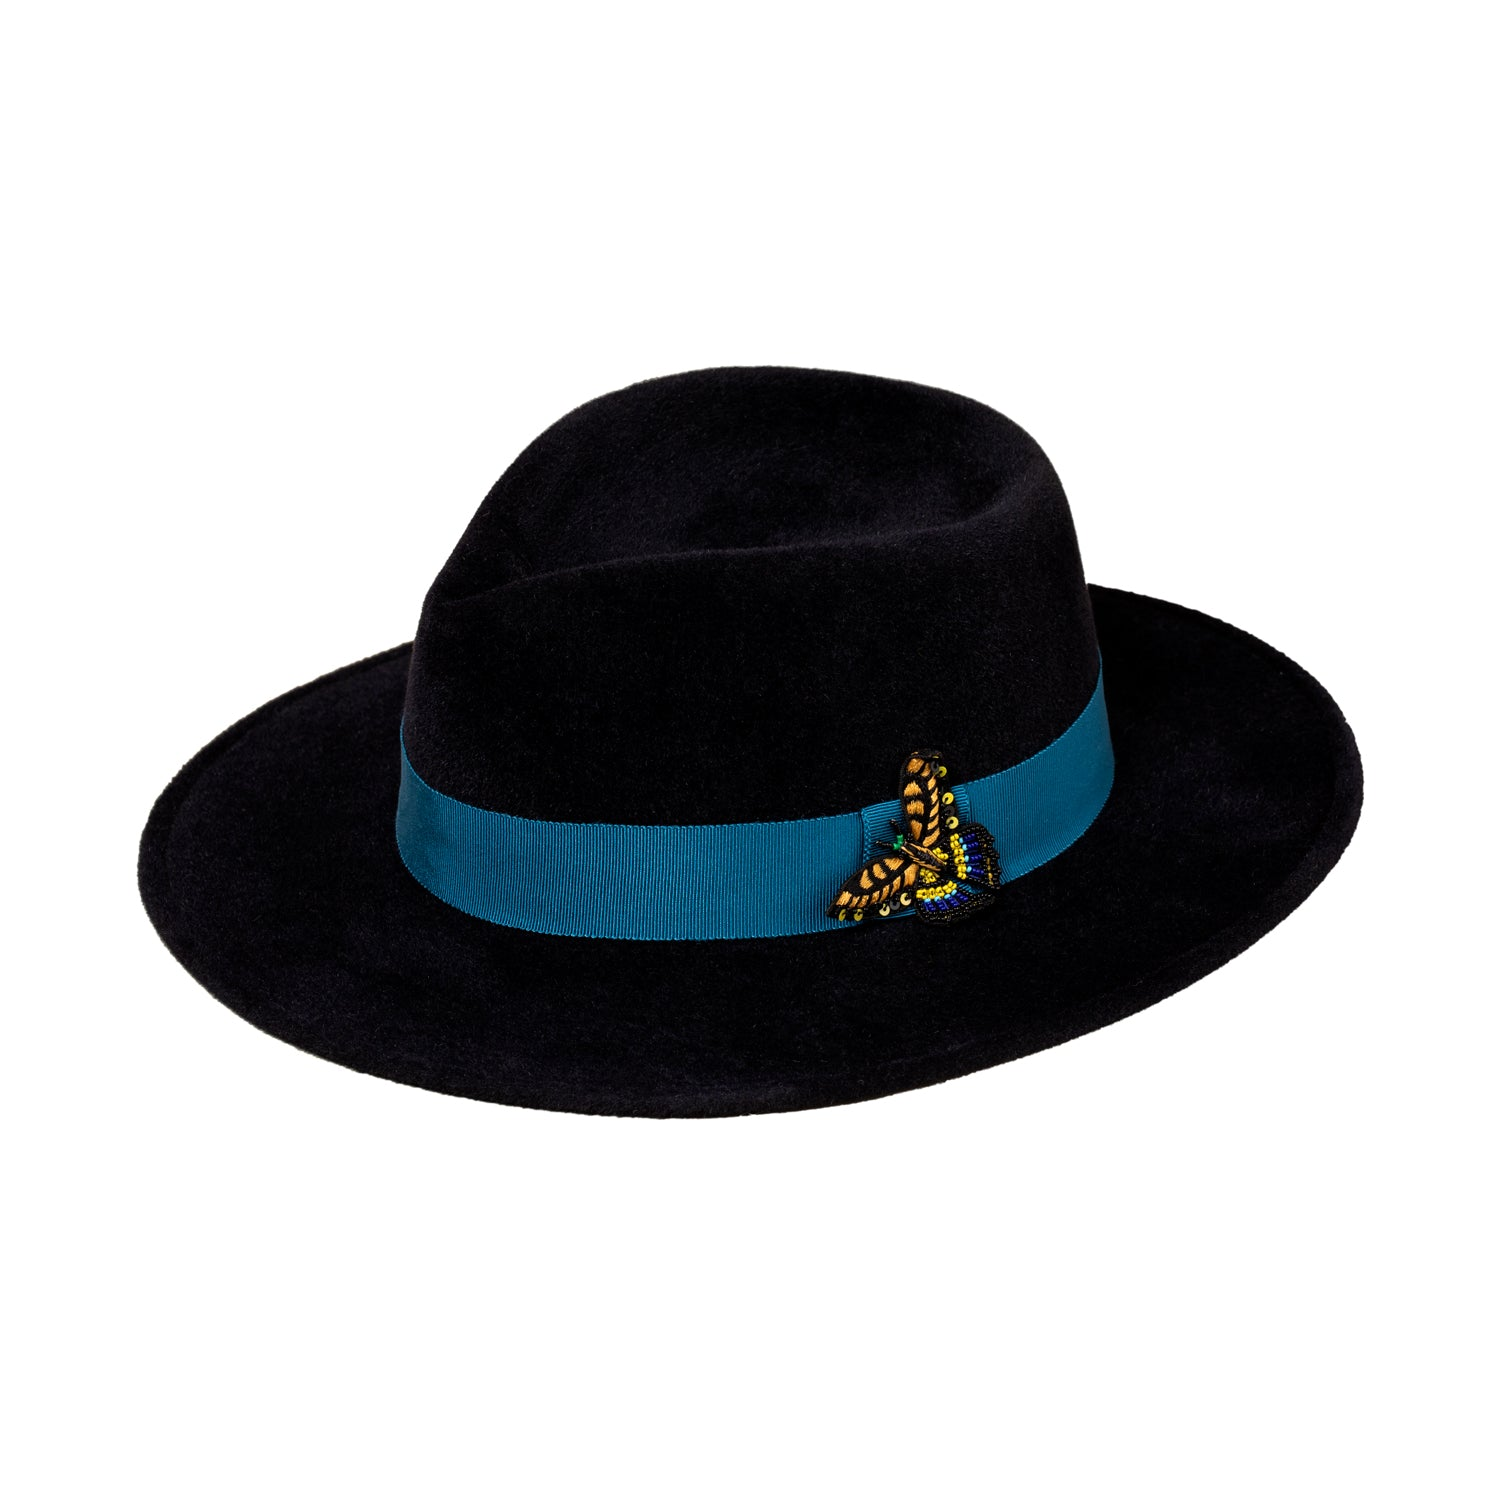 MG x Gigi Burris Almond Fedora Hat Midnight Rider